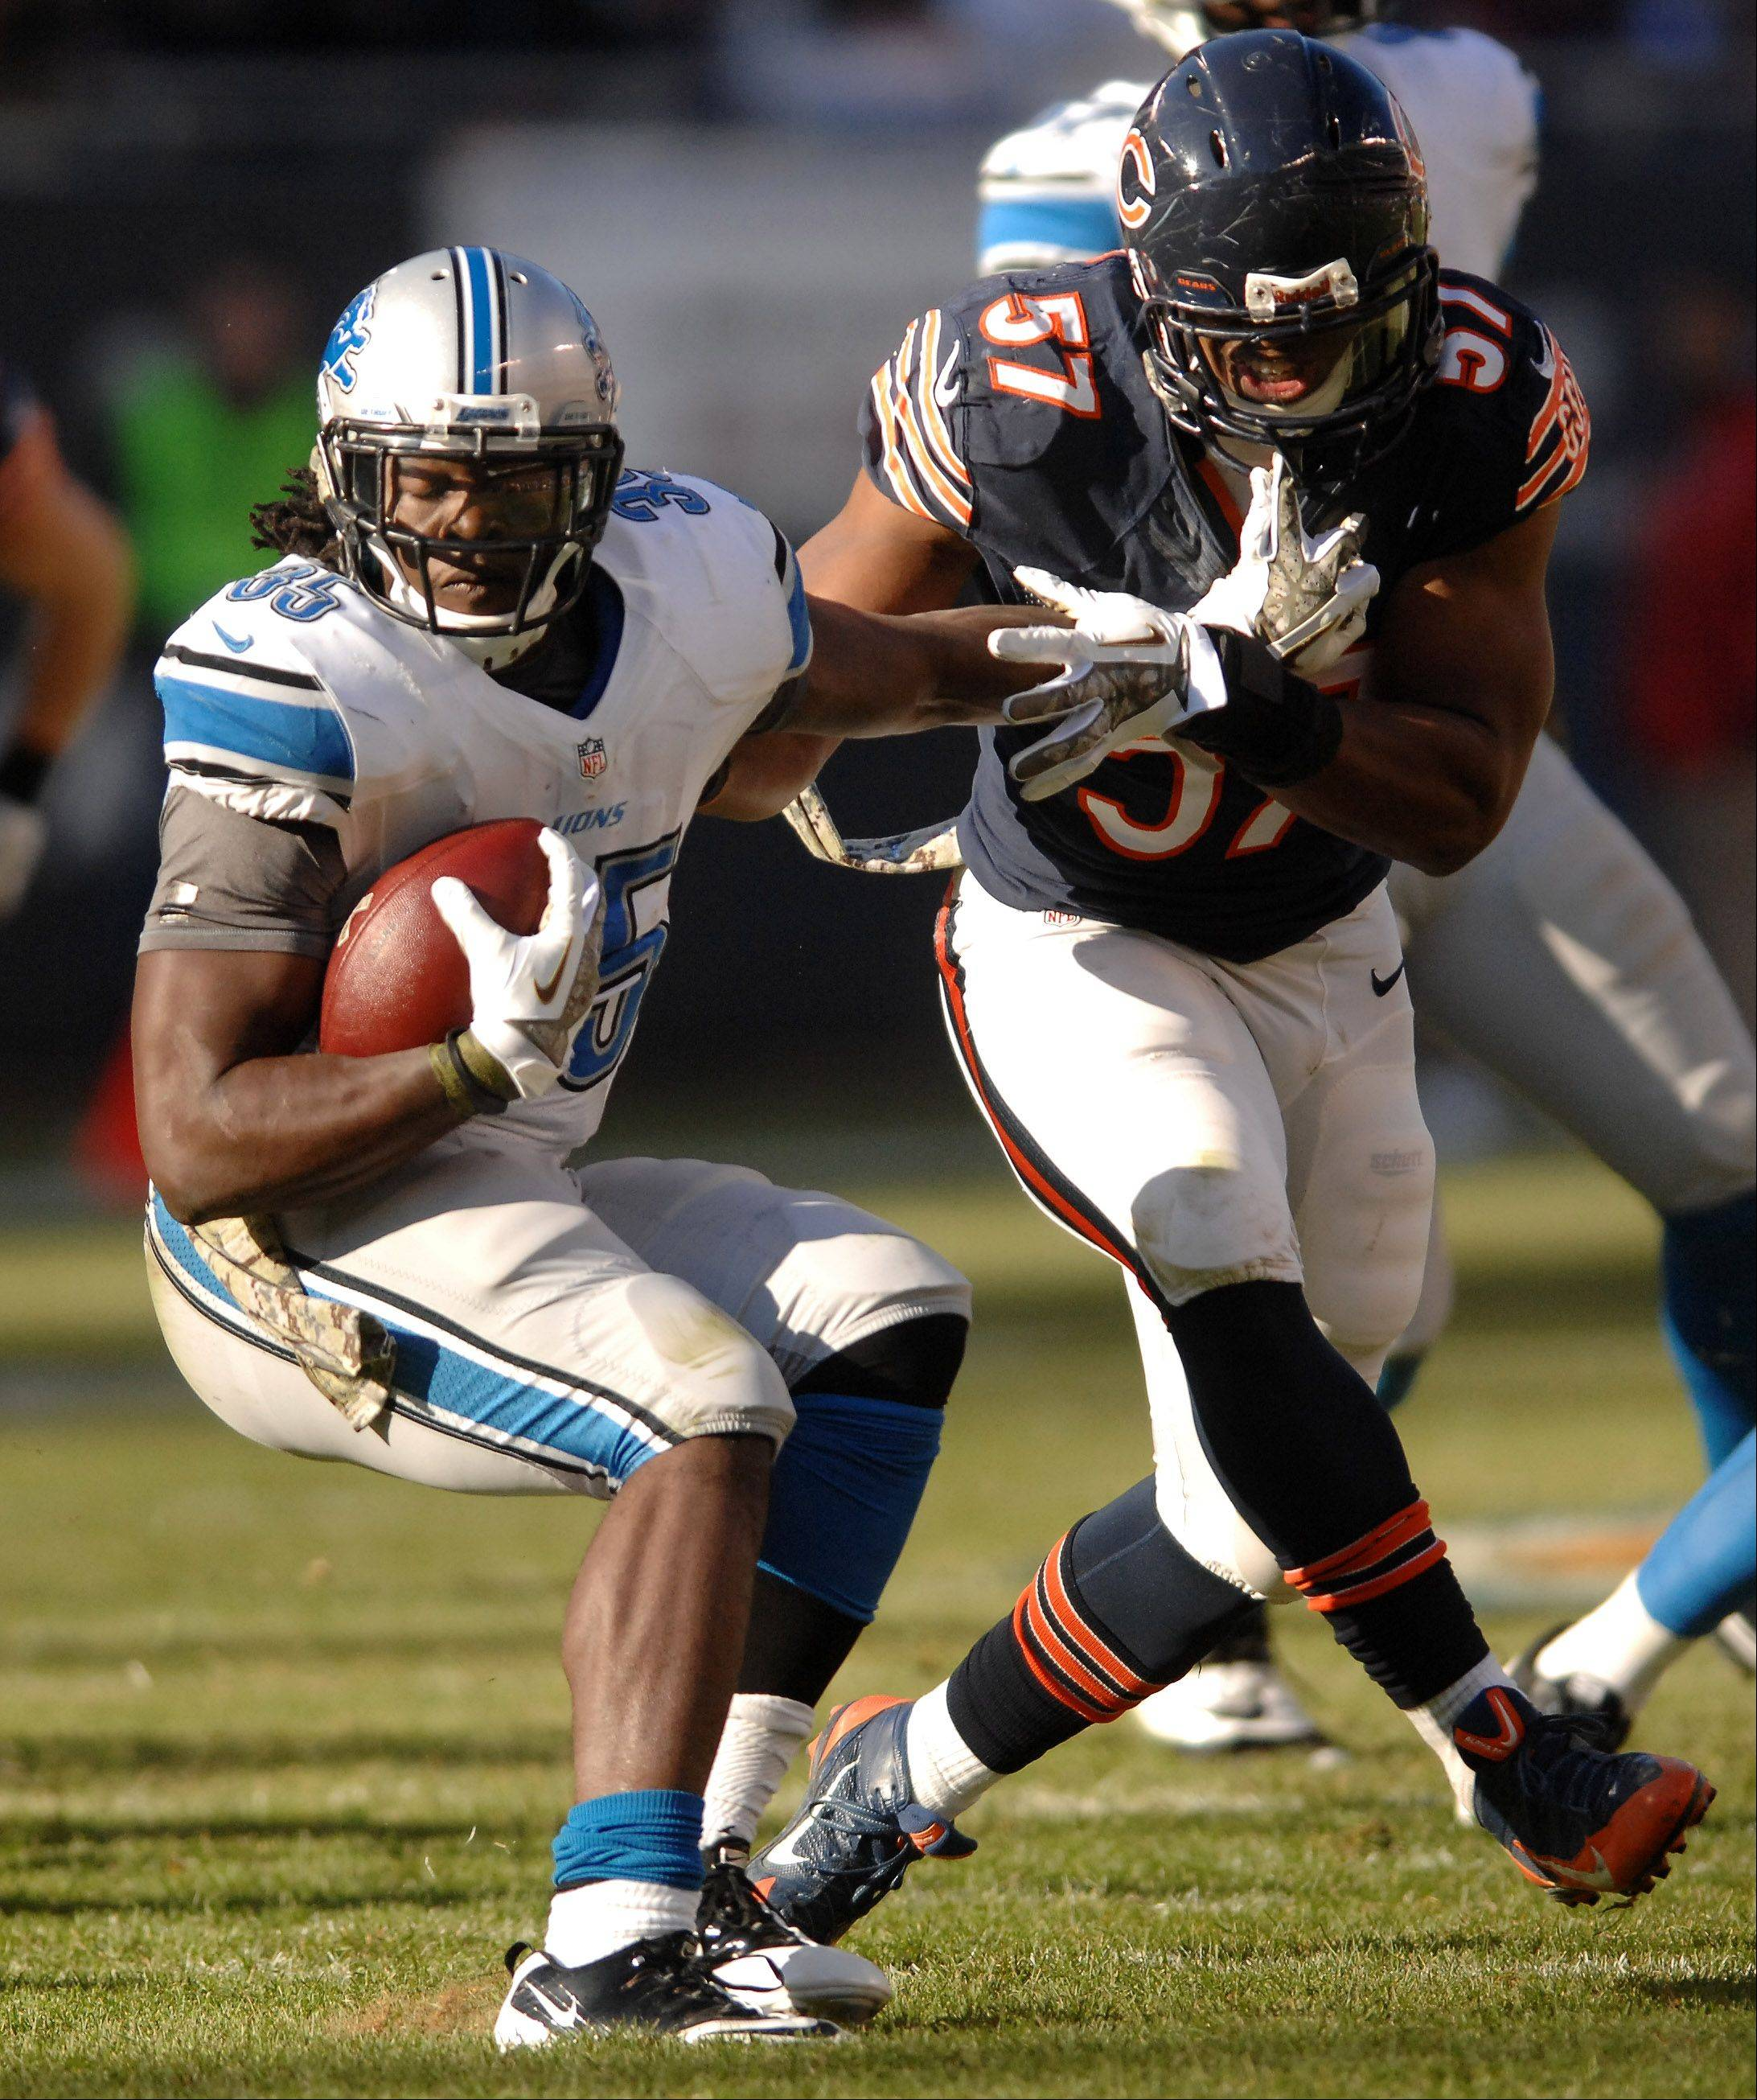 Detroit Lions running back Joique Bell (35) spins away from Chicago Bears inside linebacker Jon Bostic (57) during Sunday's game in Chicago.